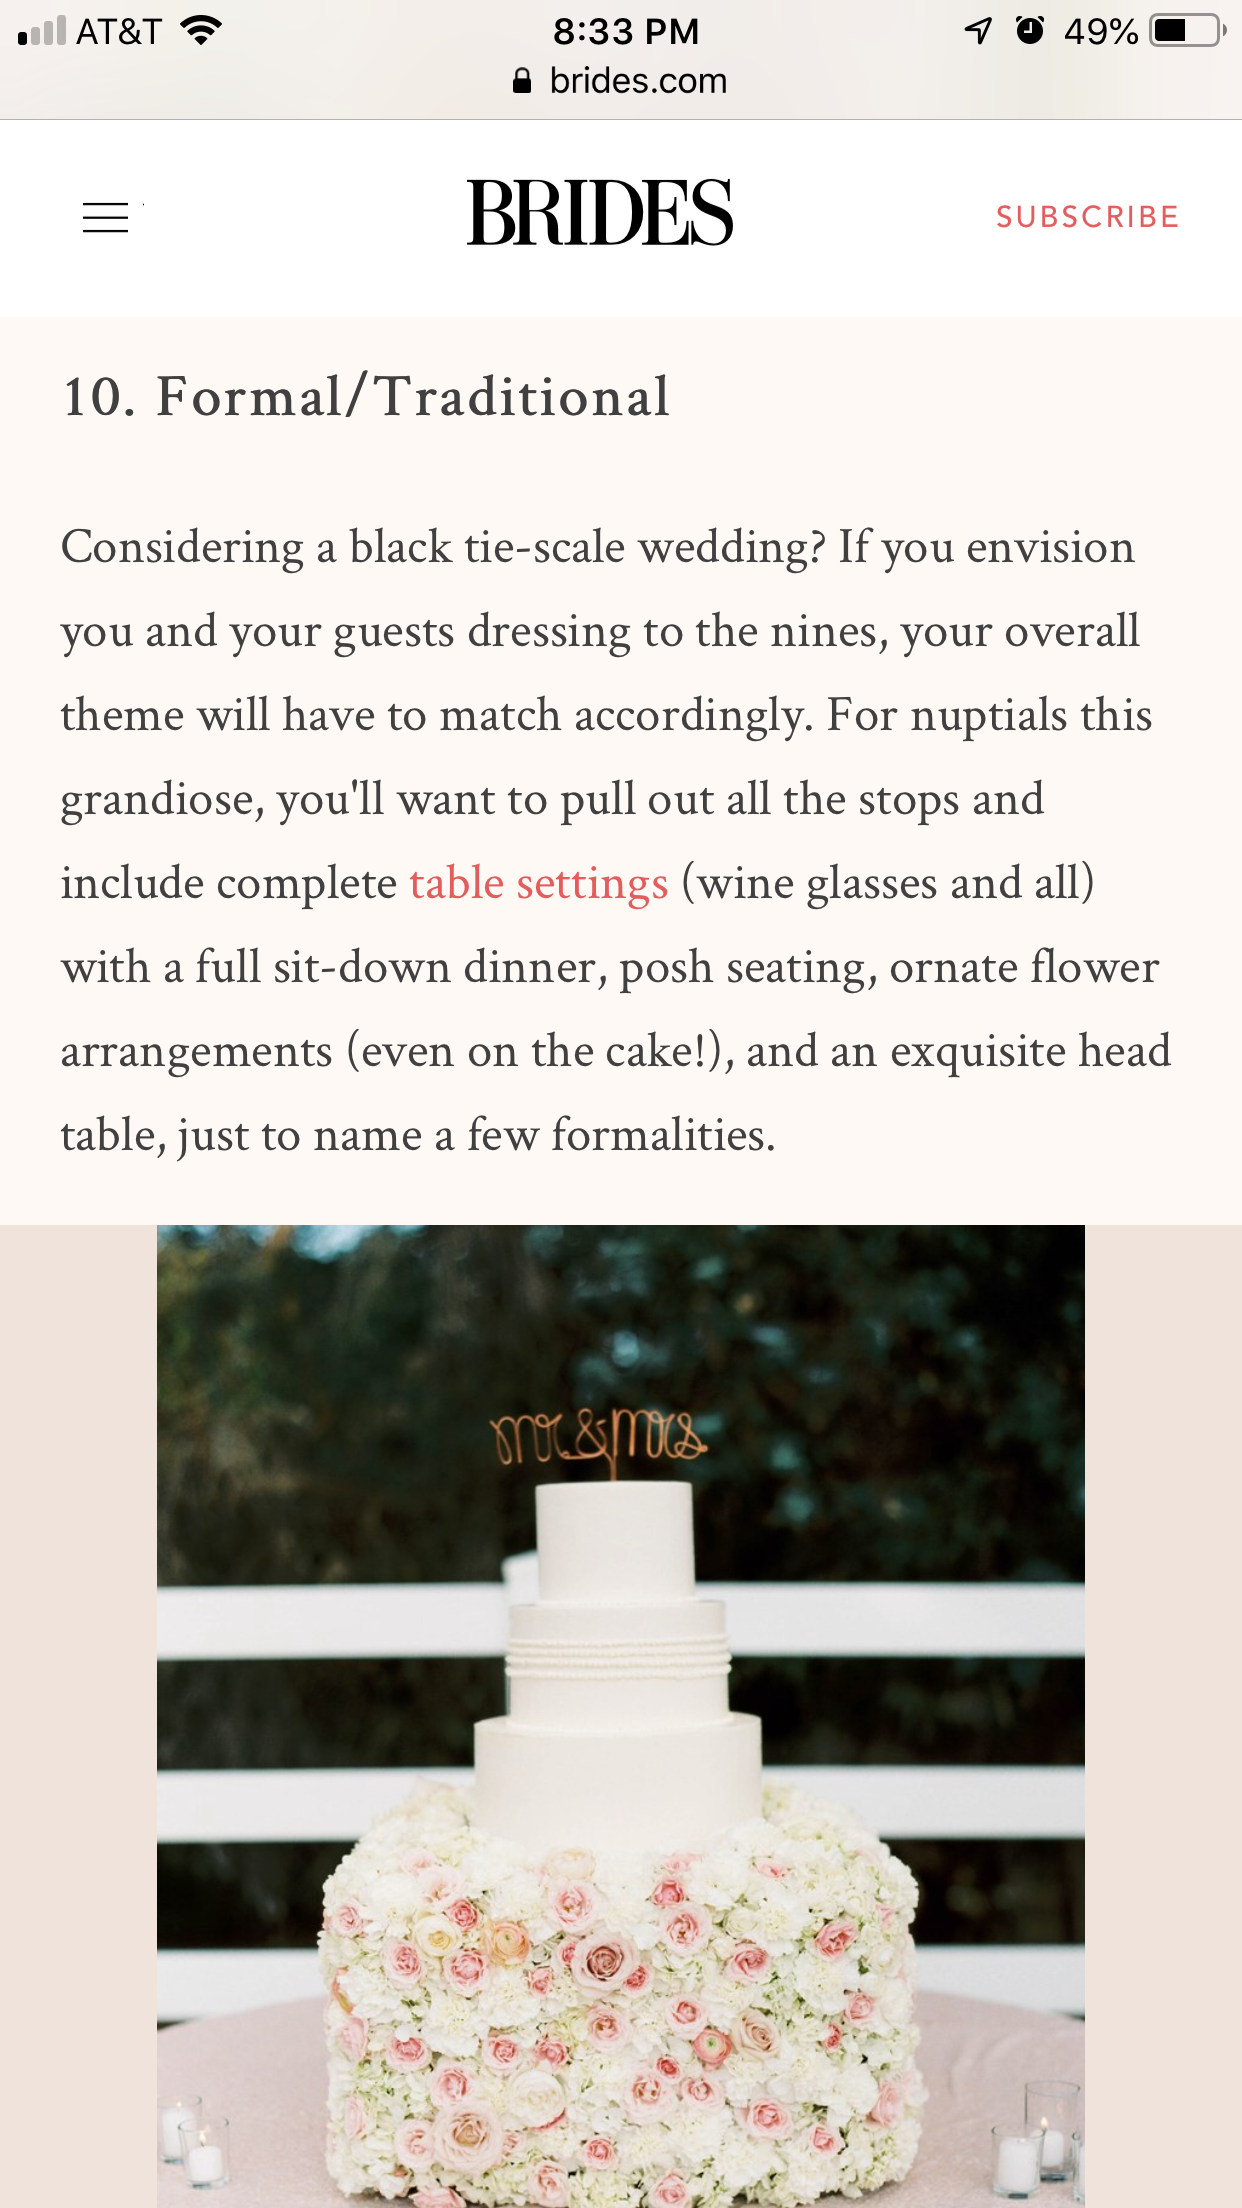 Wedding decorations with lights november 2018 Pin by Stephanie PlearEves on Wedding Themes in   Pinterest